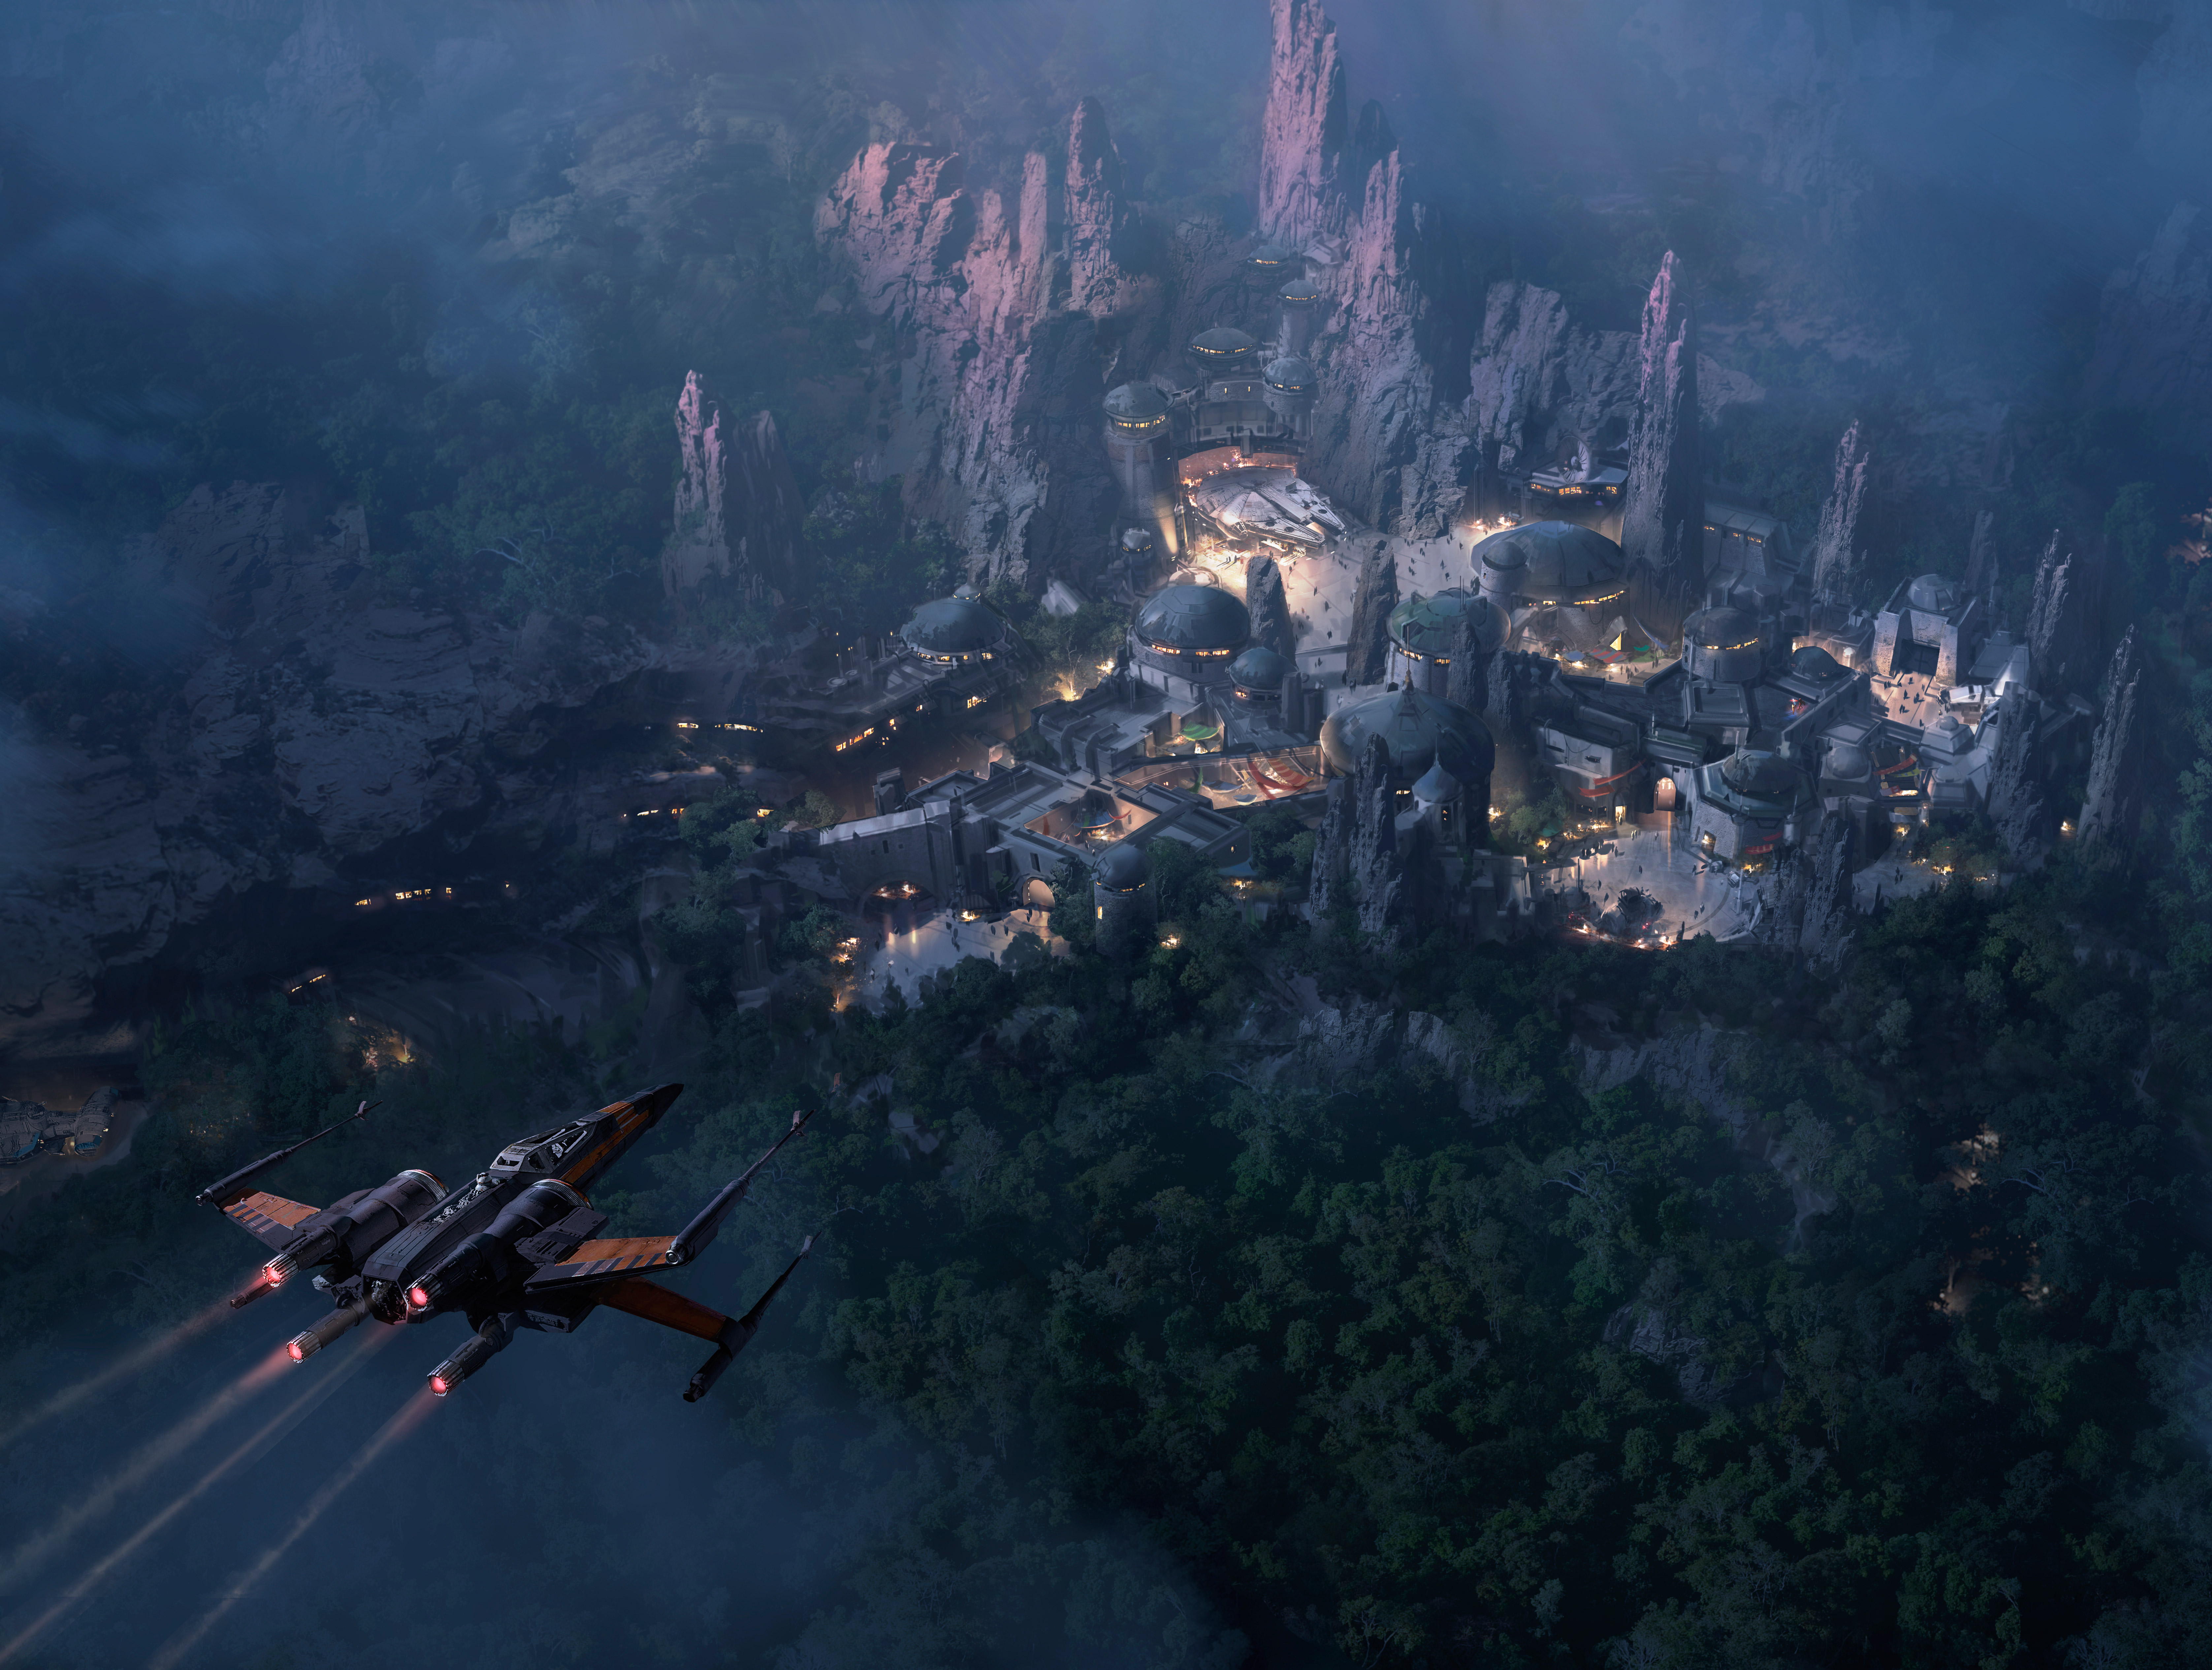 Star Wars Land At Night Concept Art 5k Hd Artist 4k Wallpapers Images Backgrounds Photos And Pictures